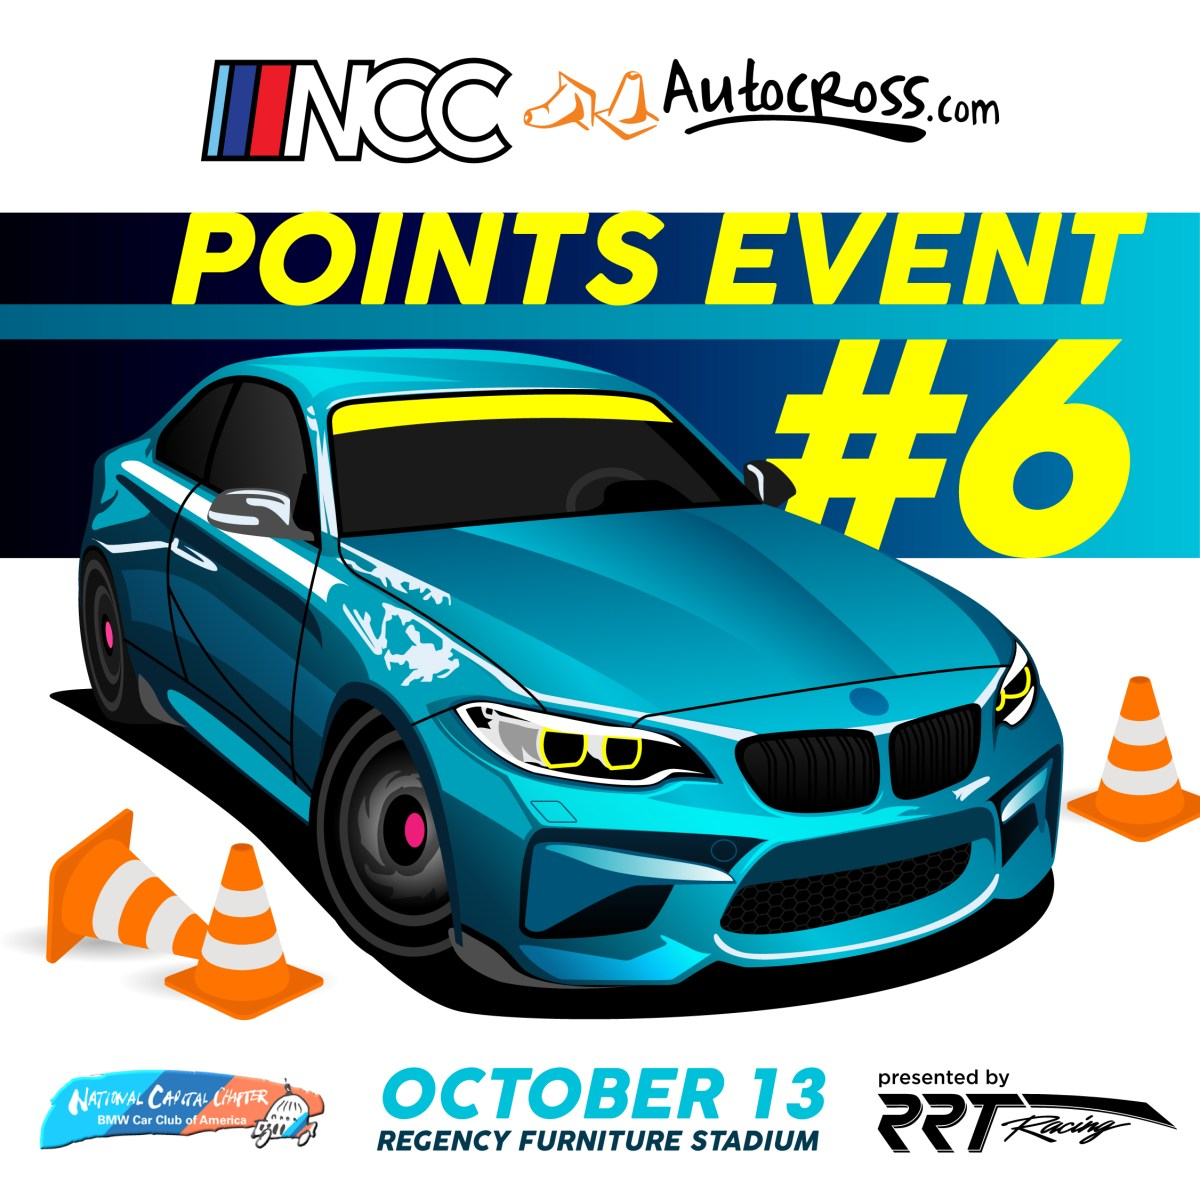 Thanks for coming to Points Event #6!